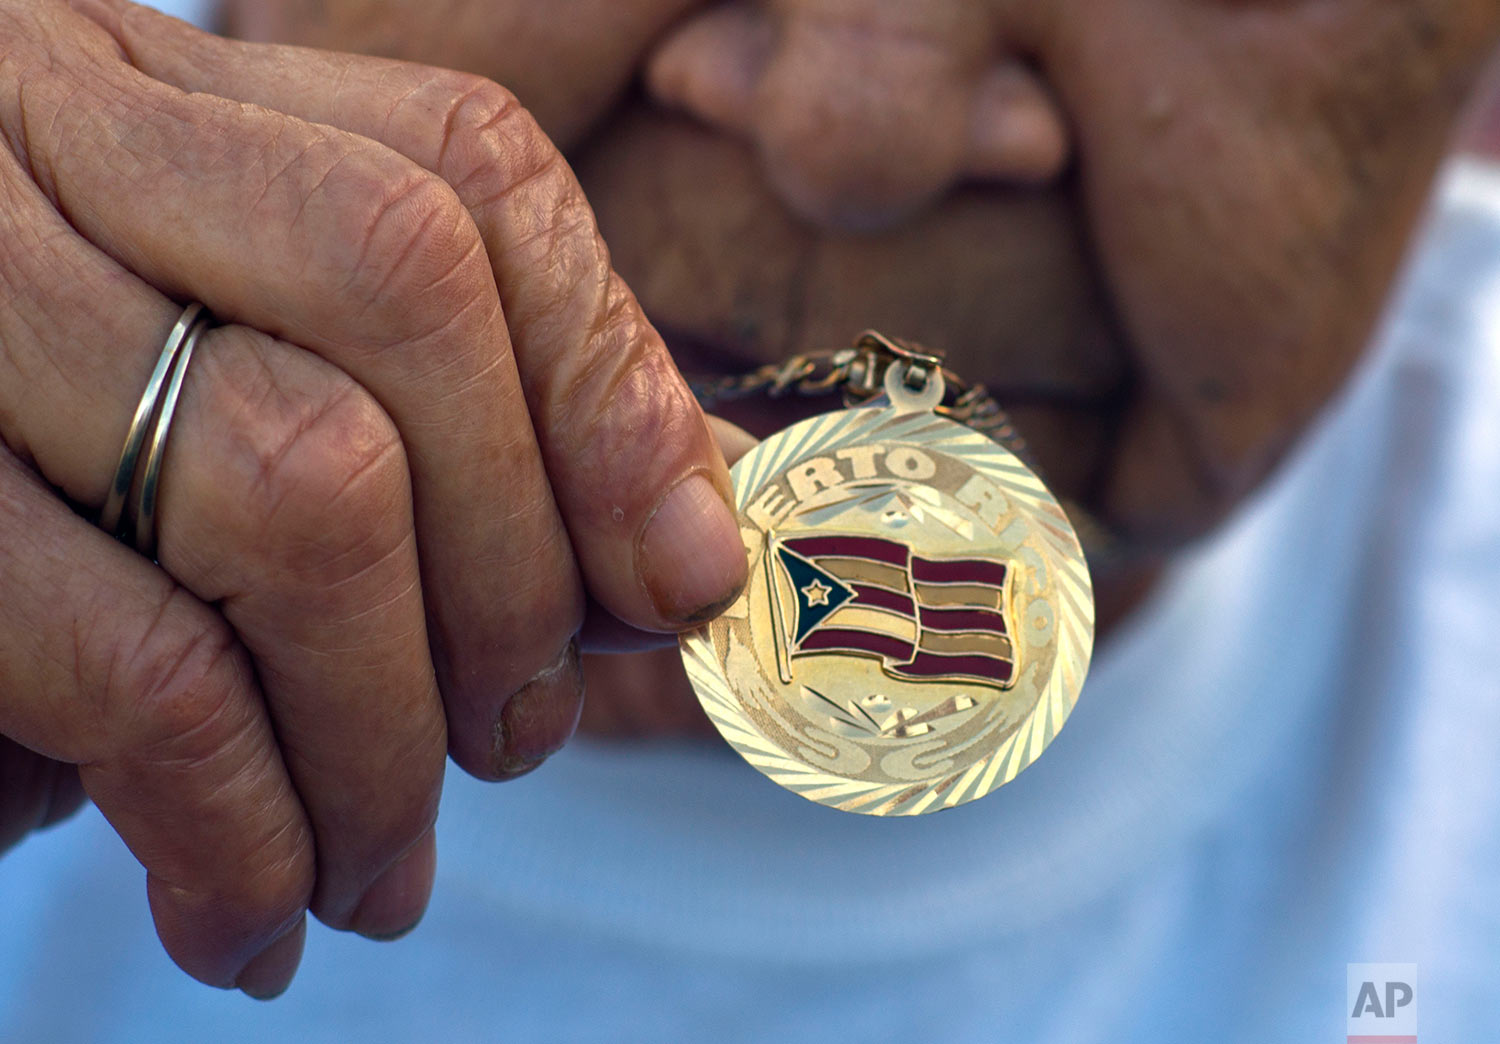 In this Thursday, Oct. 12, 2017 photo, Agustina Lugo Solis shows her necklace pendent decorated with a Puerto Rican flag, as she lives in a school-turned-shelter after her home was destroyed by Hurricane Maria in Toa Baja, Puerto Rico.  (AP Photo/Ramon Espinosa)